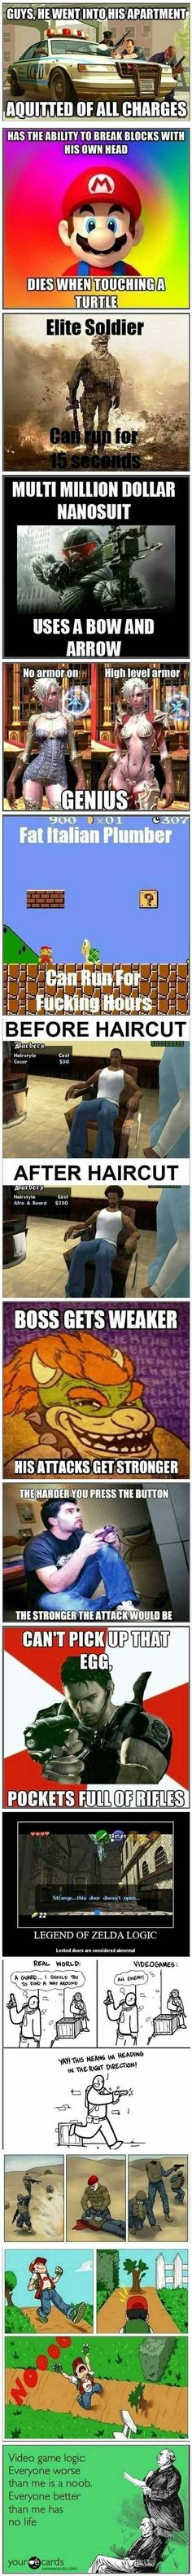 Video Games Logic .     More Pic:http://www.trollcab.com/